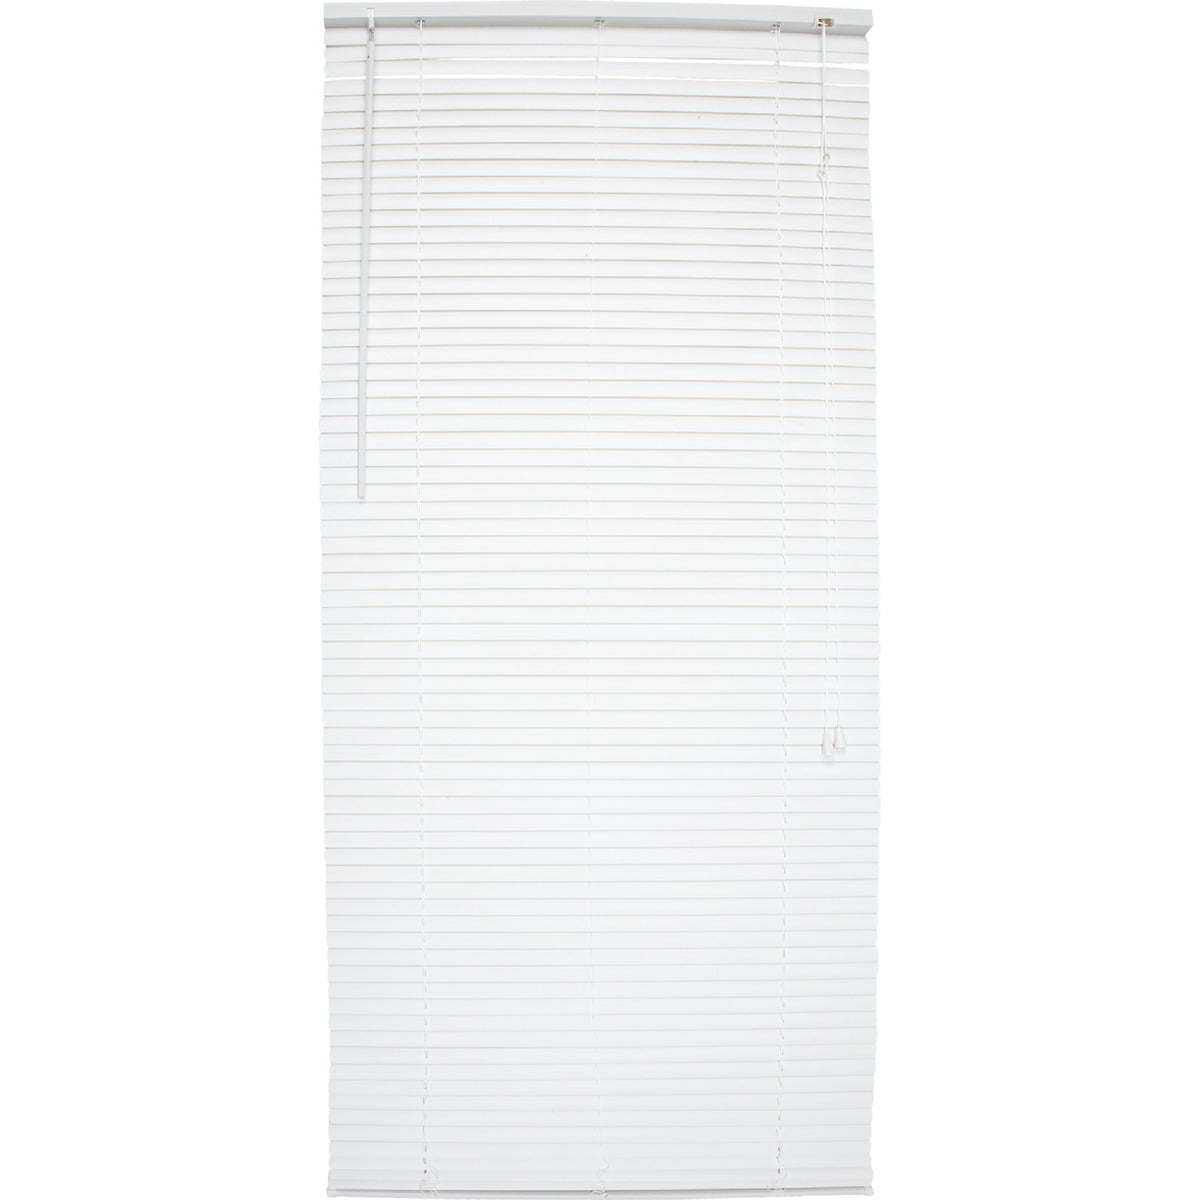 40X72 WHITE MINI BLIND - 615382 by Lotus Wind Incom